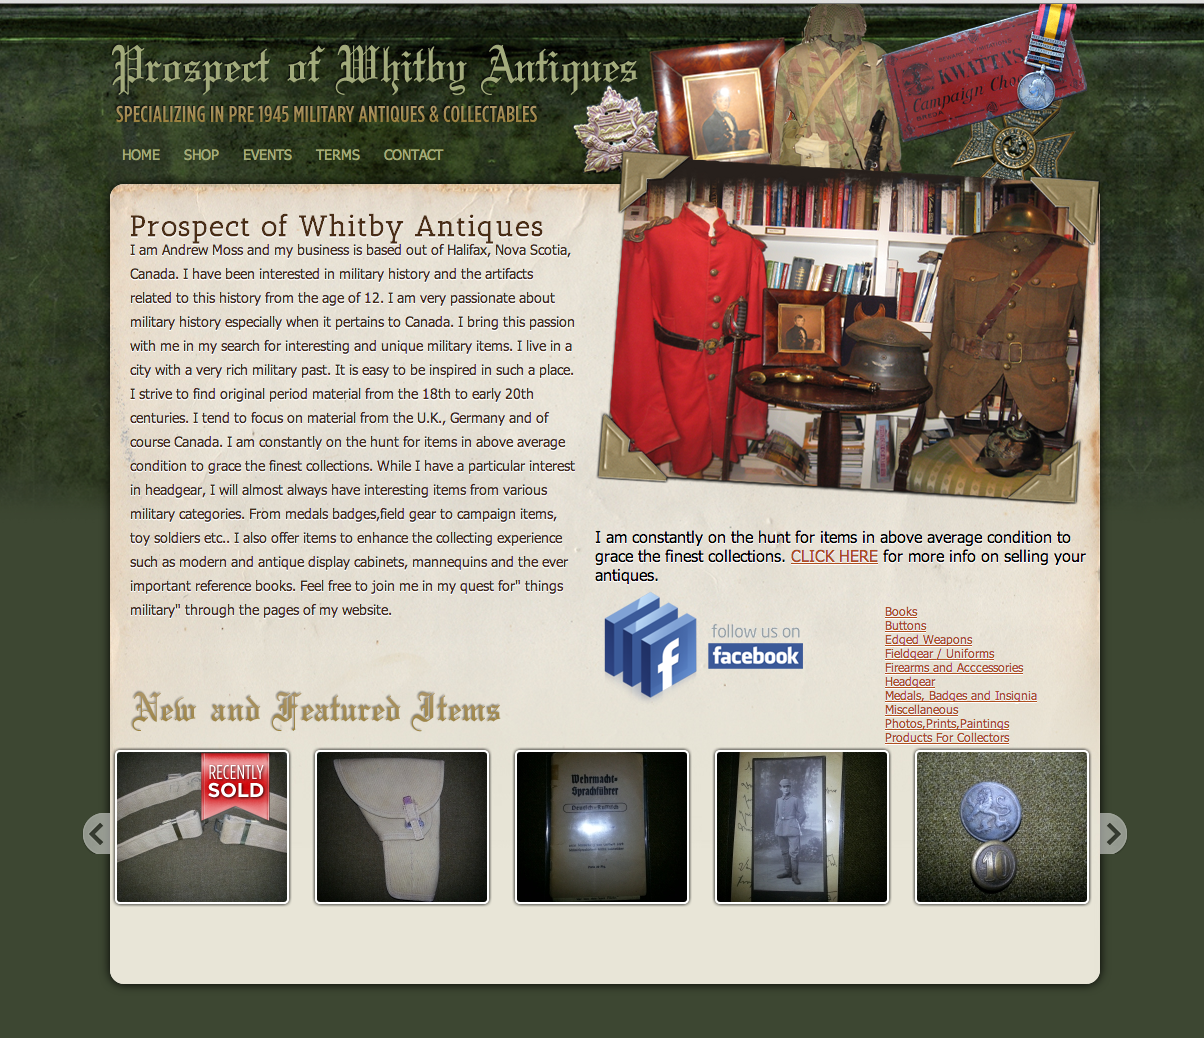 Prospect of Whitby Antiques